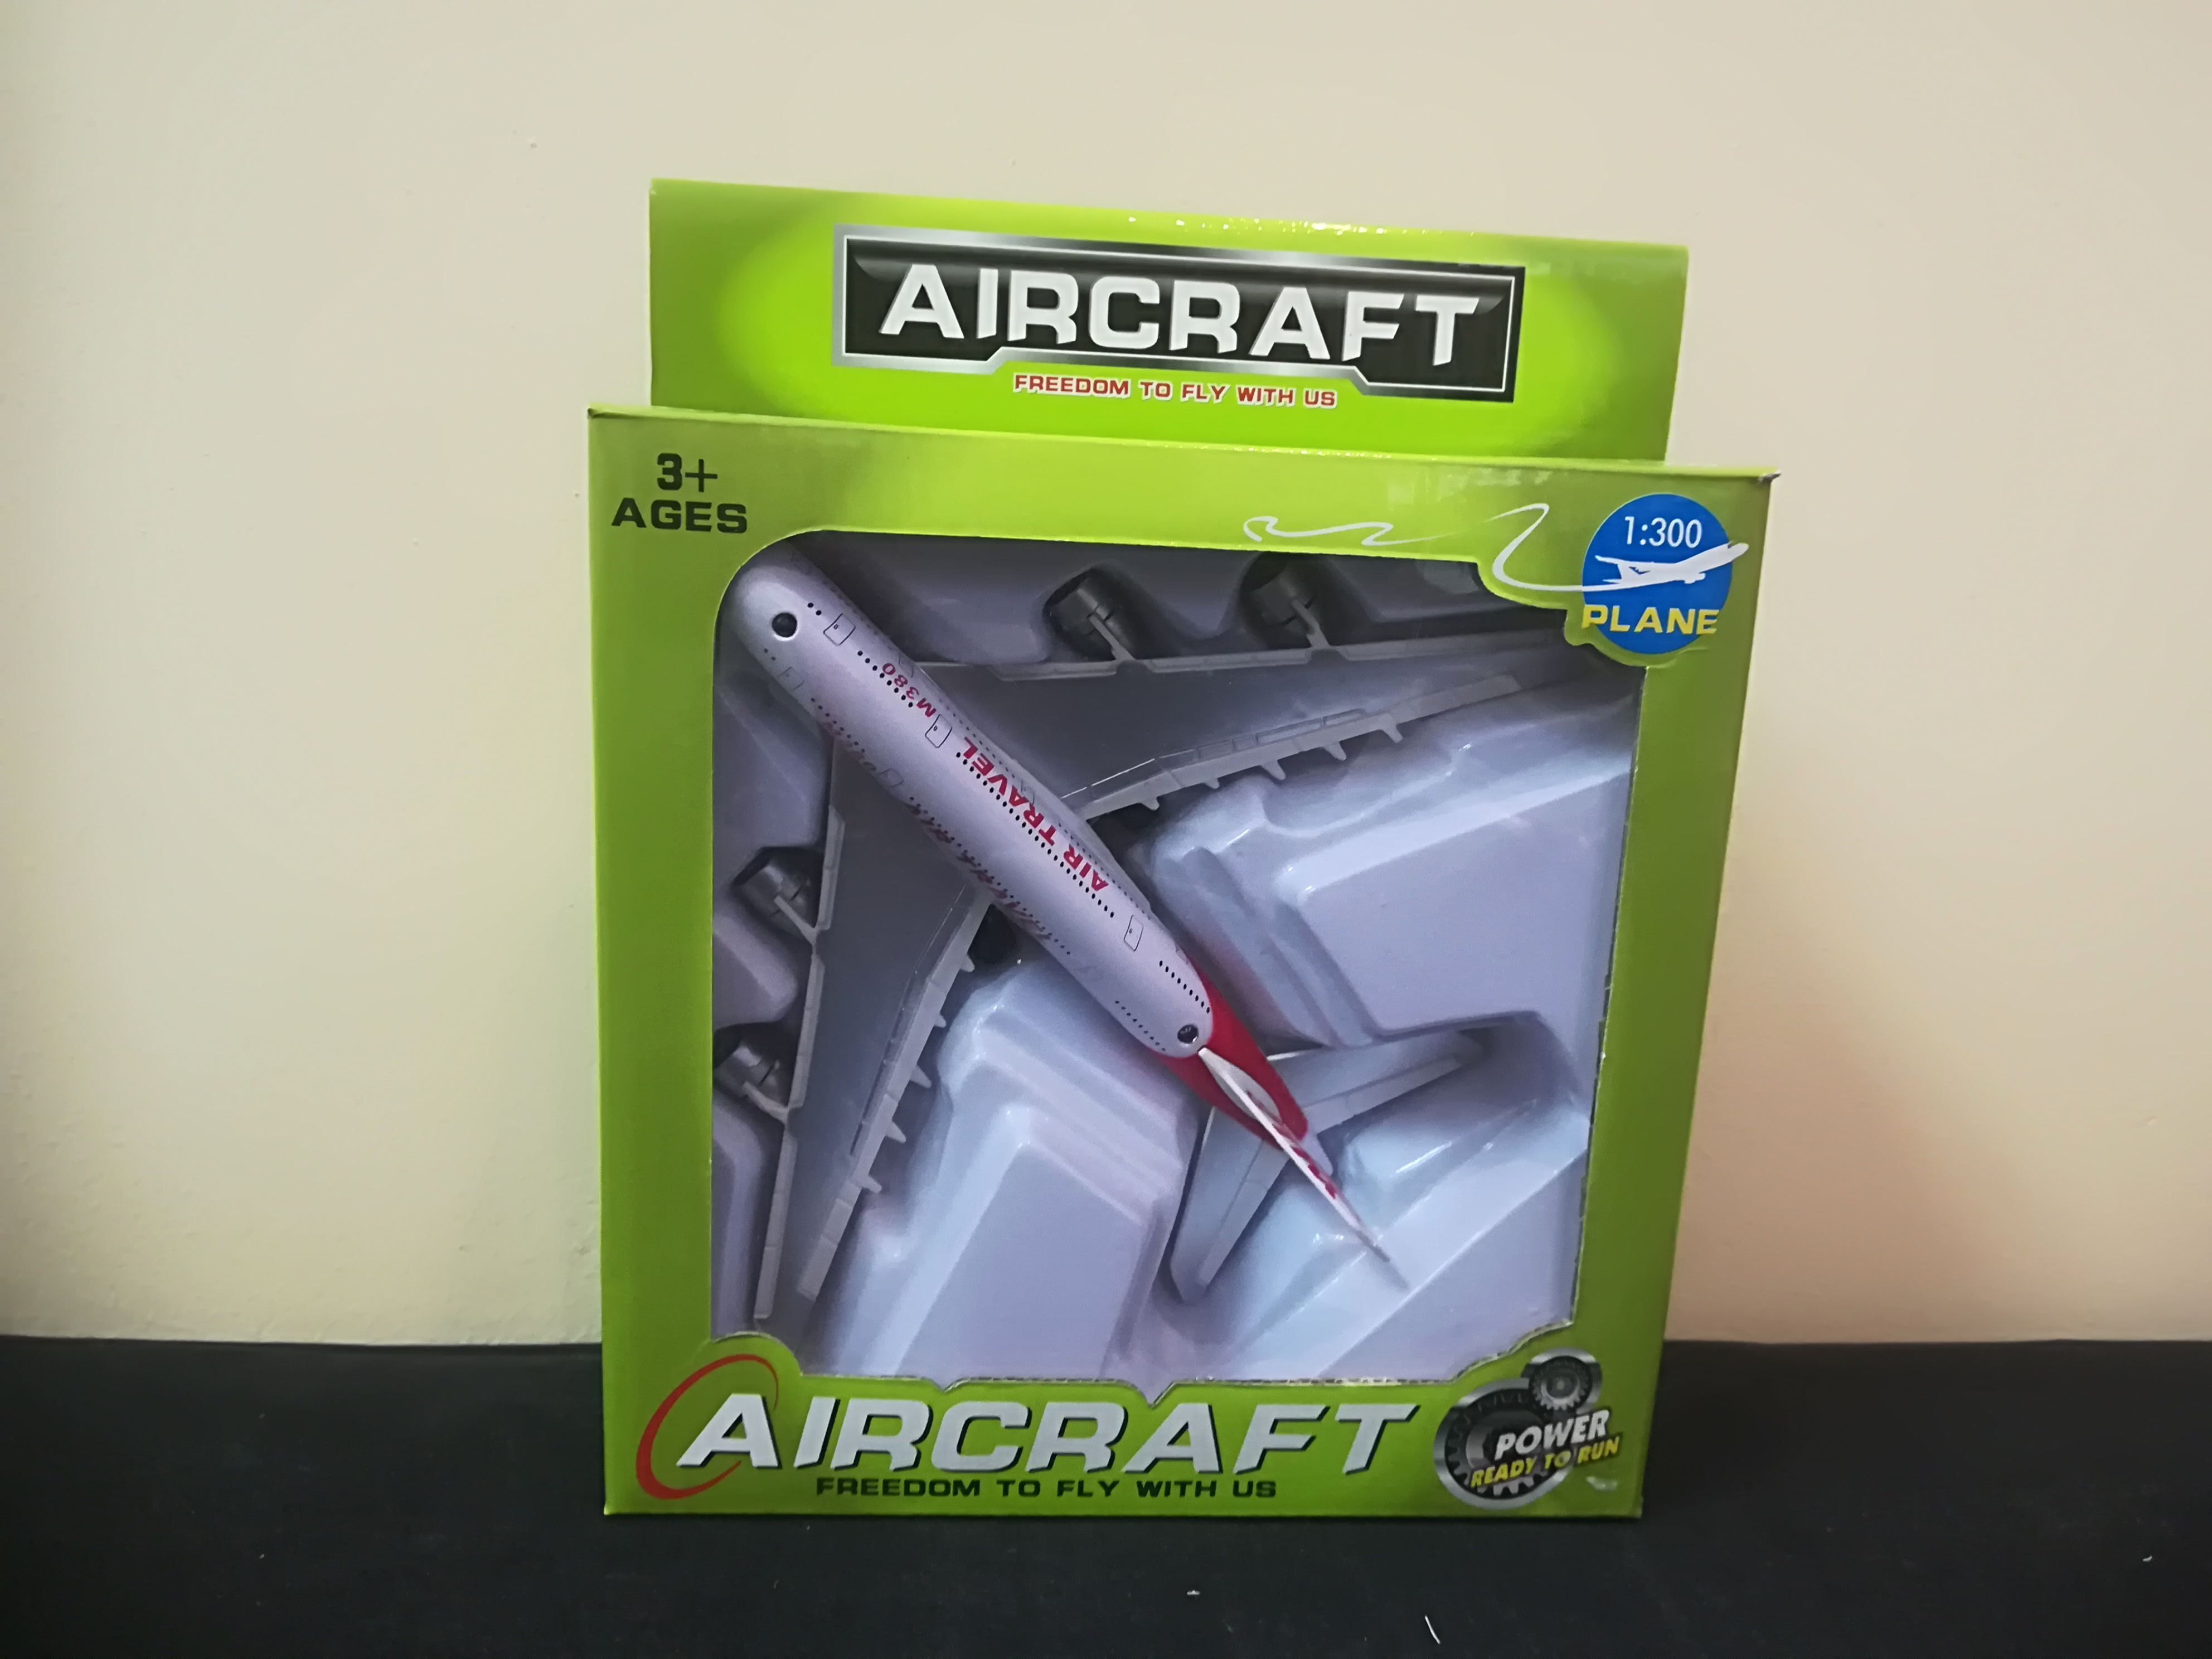 Aircraft ages 3+ from Mercury Wholesalers